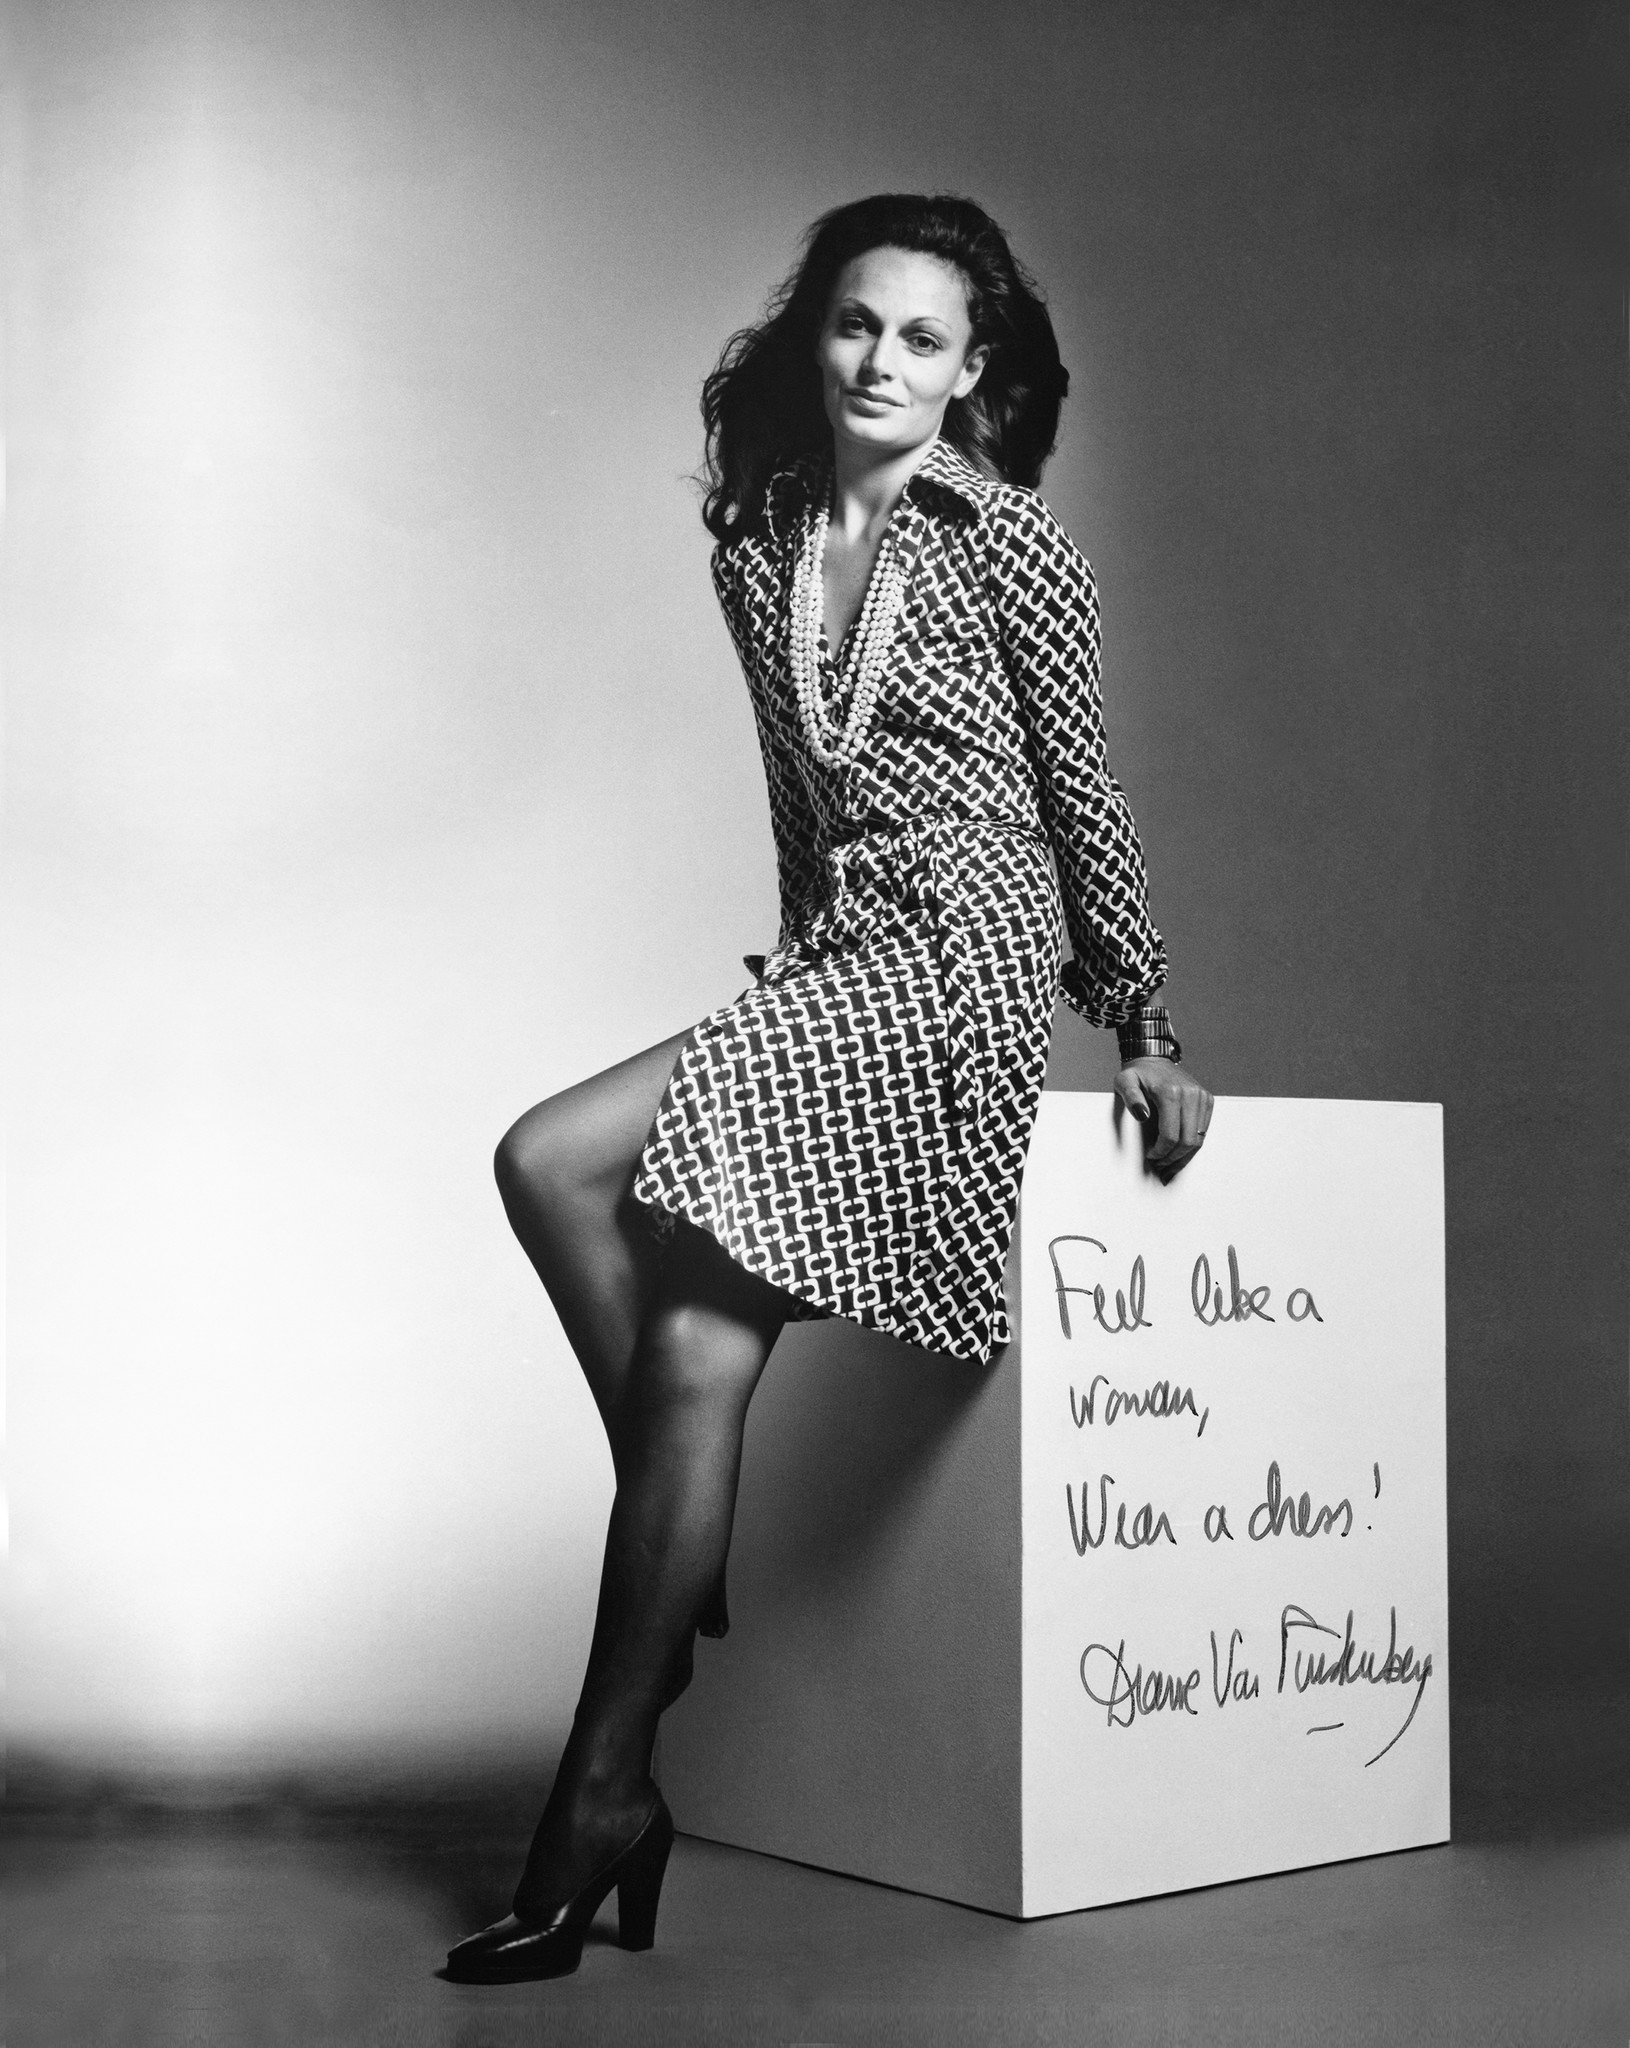 Diane Von Furstenberg Creator Of The Wrap Dress Is A Champion For Women S Causes What Else Does Her Future Hold Los Angeles Times